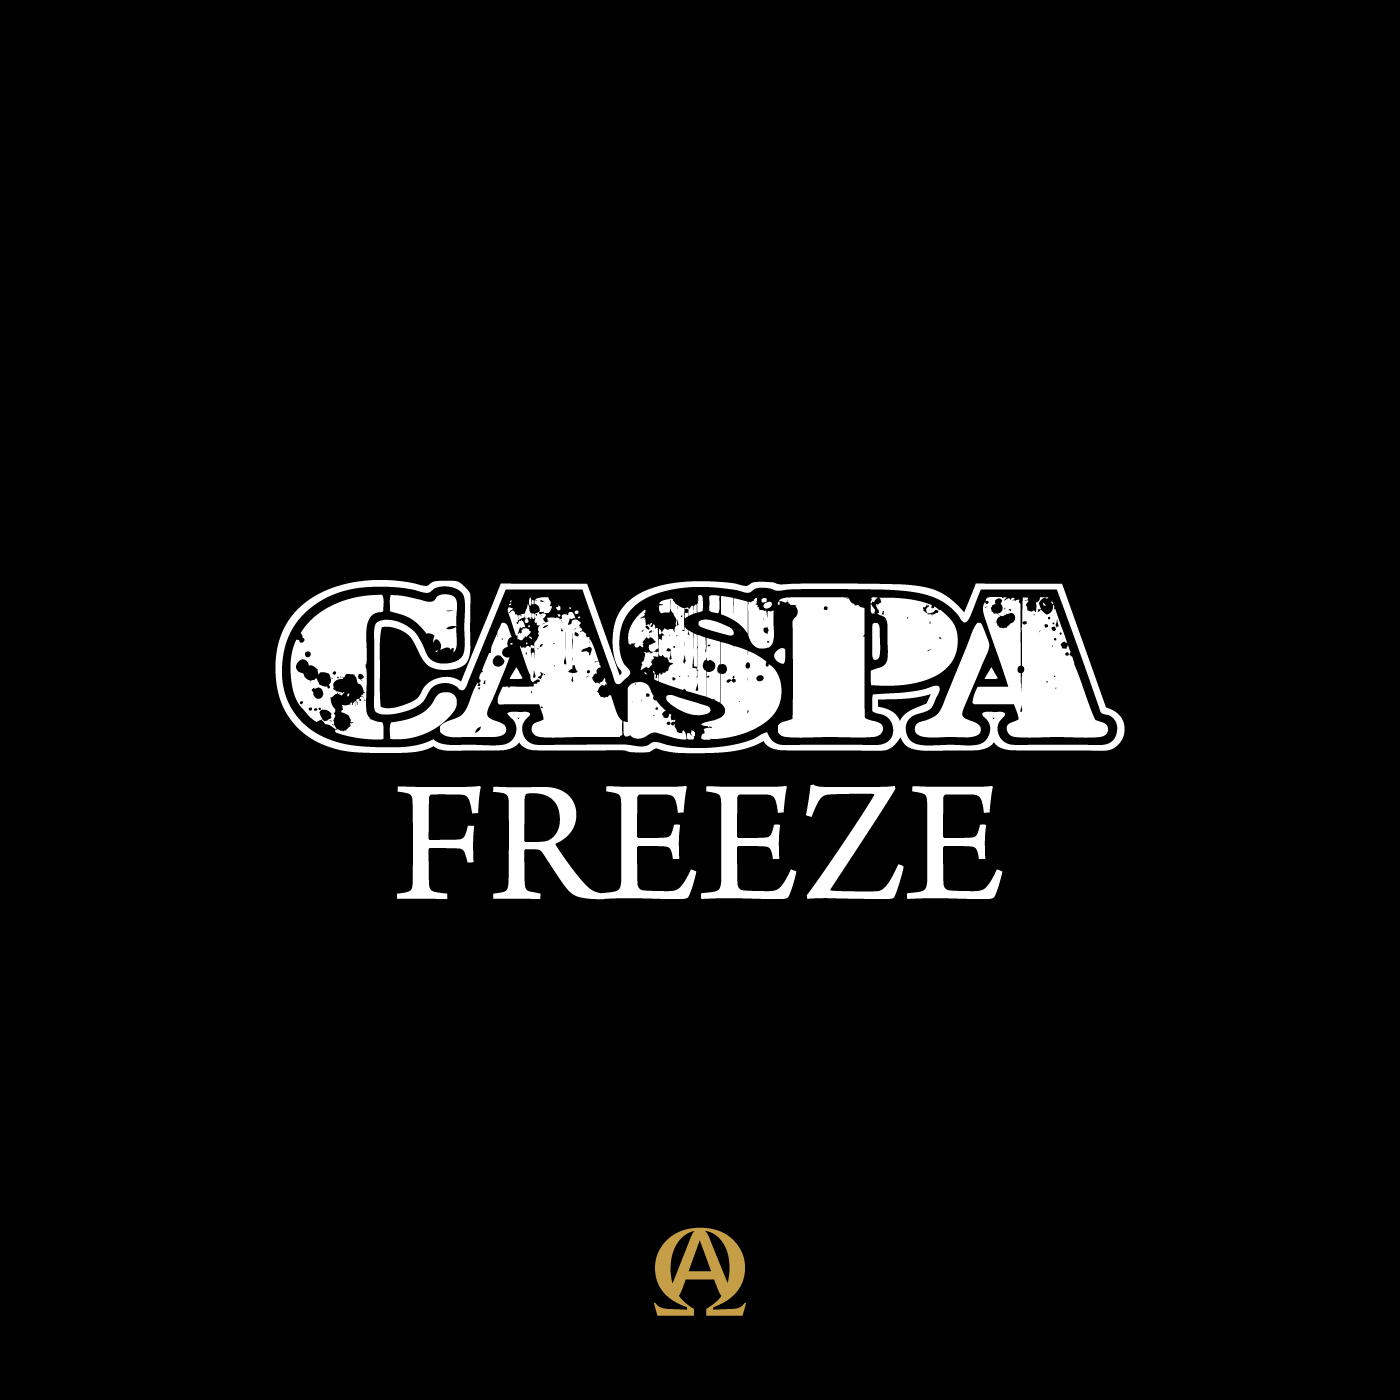 DP081: FREEZE